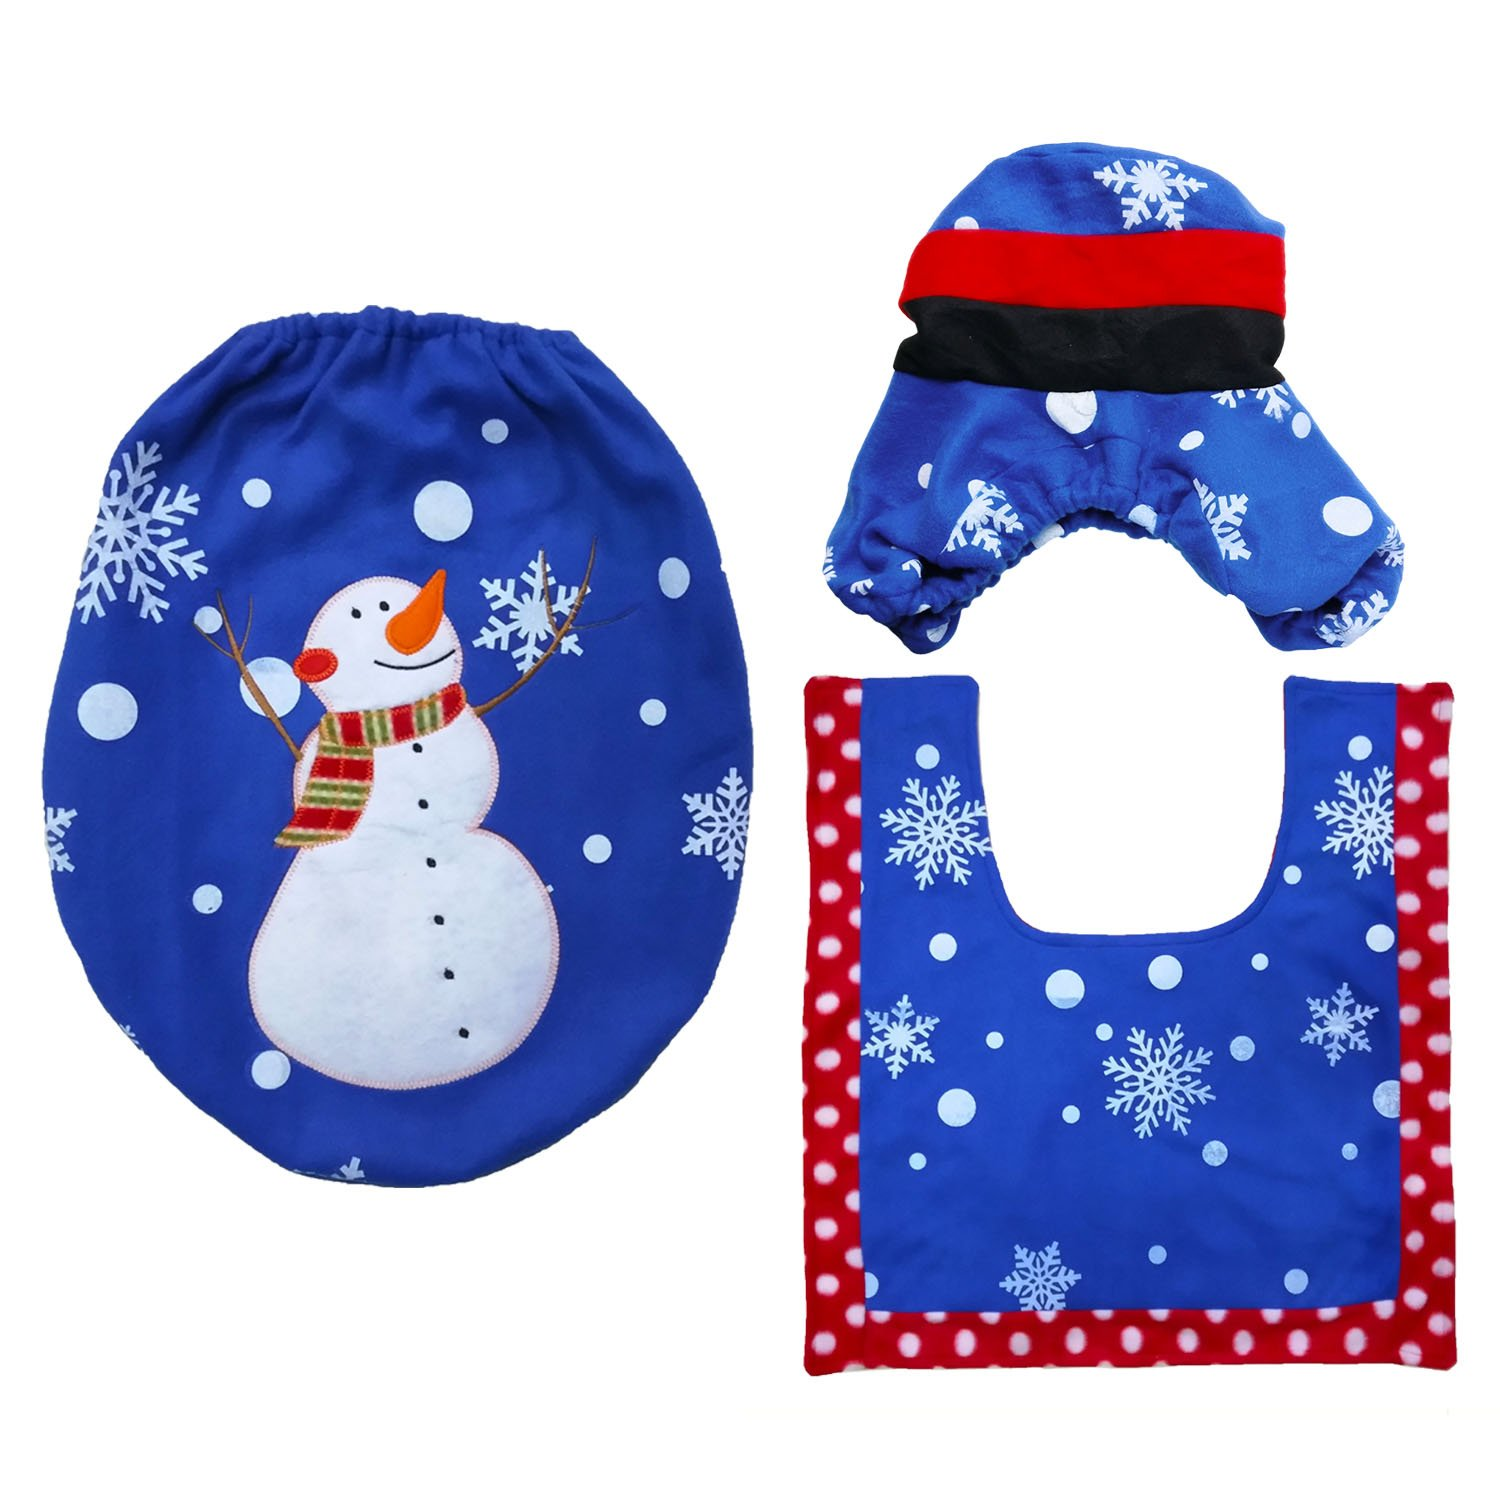 3 PCS Merry Christmas Decorations Happy Santa Toilet Seat Cover Rug Tank Cover Bathroom Set Christmas Home Decor Elf Style Gosear